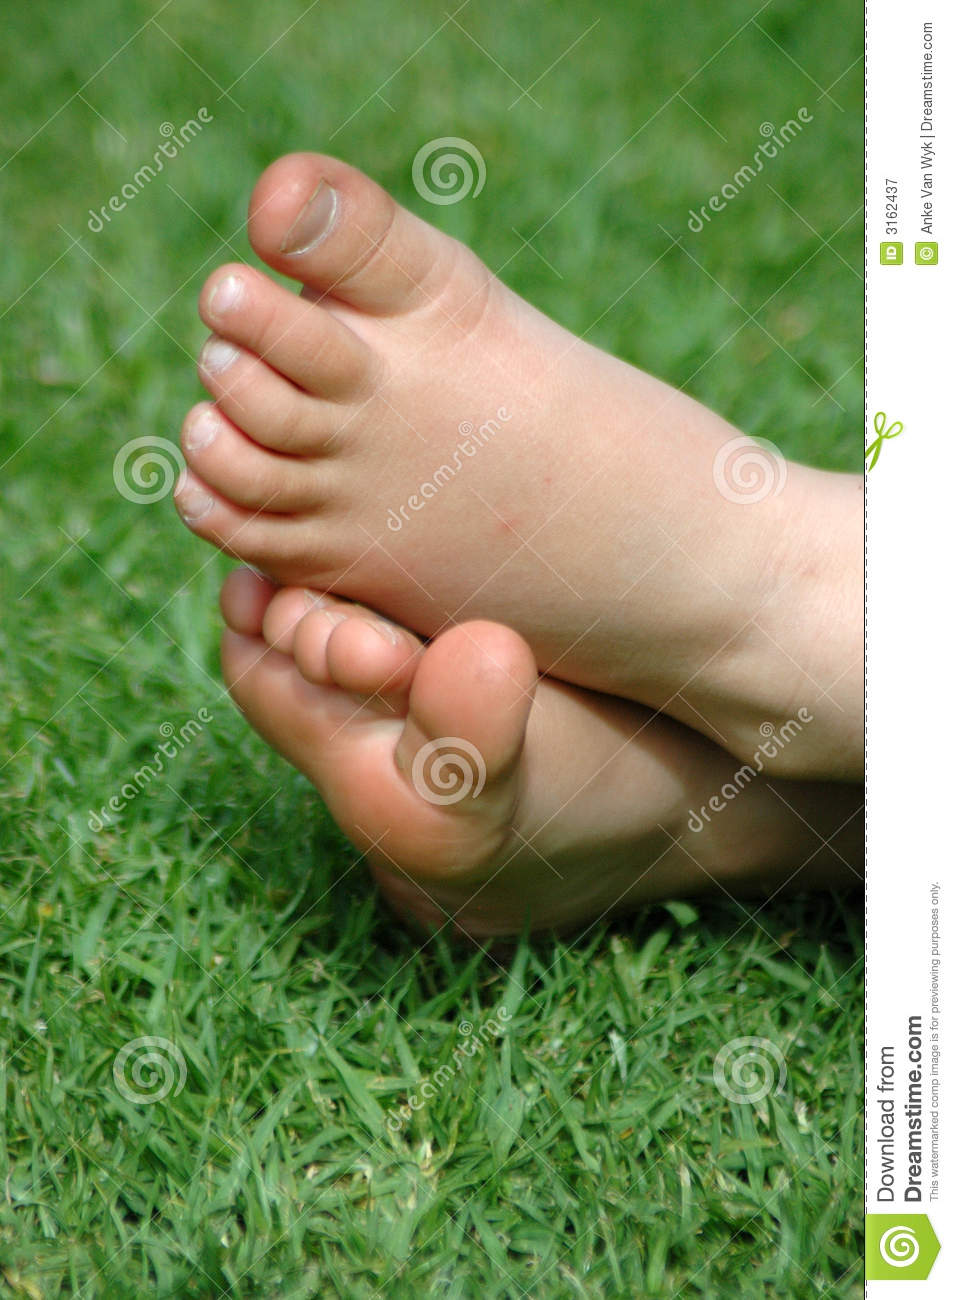 Is Bare Minerals Makeup Cruelty Free: Little Bare Feet Stock Image. Image Of Children, Girl